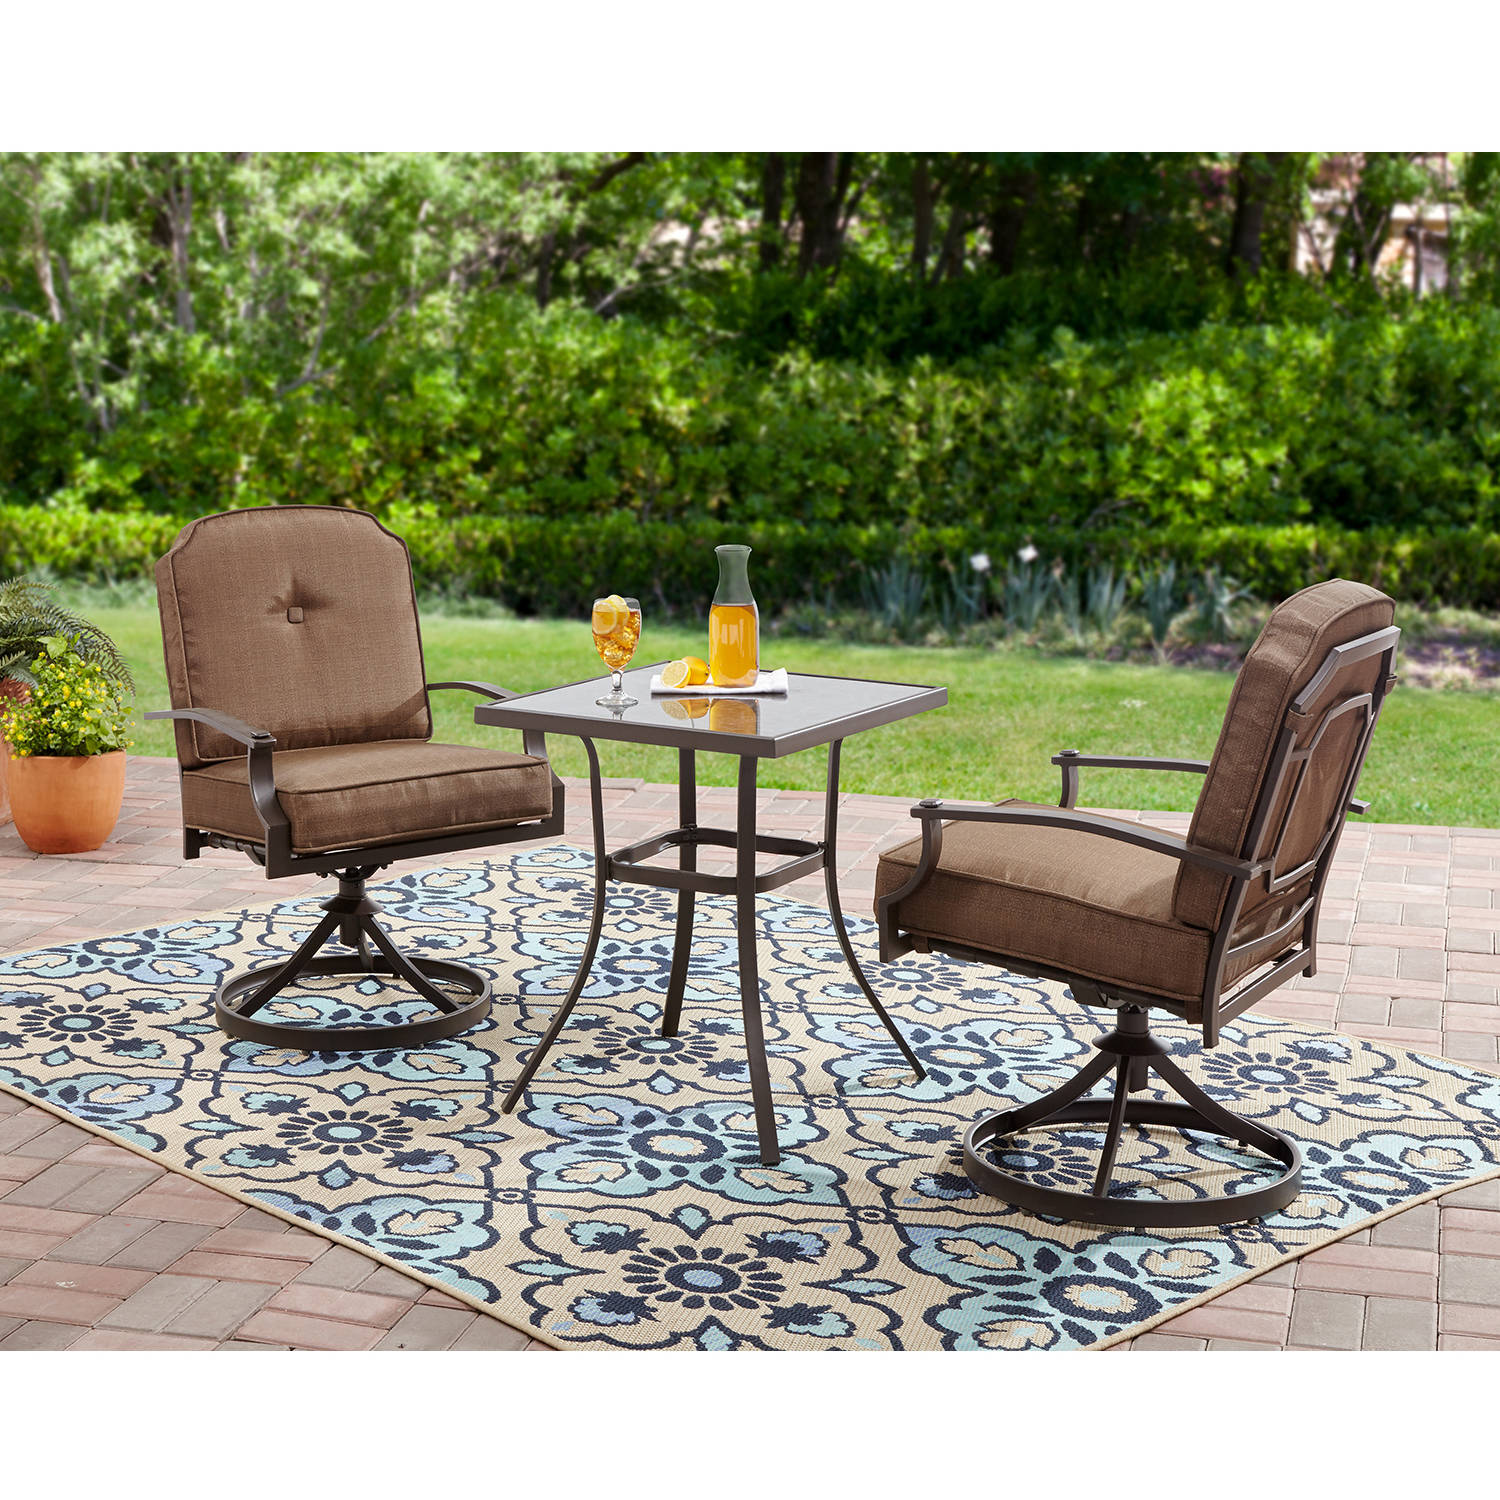 Details About 3 Piece Outdoor Patio Furniture Set Bistro Garden Yard Durable Steel Table Chair